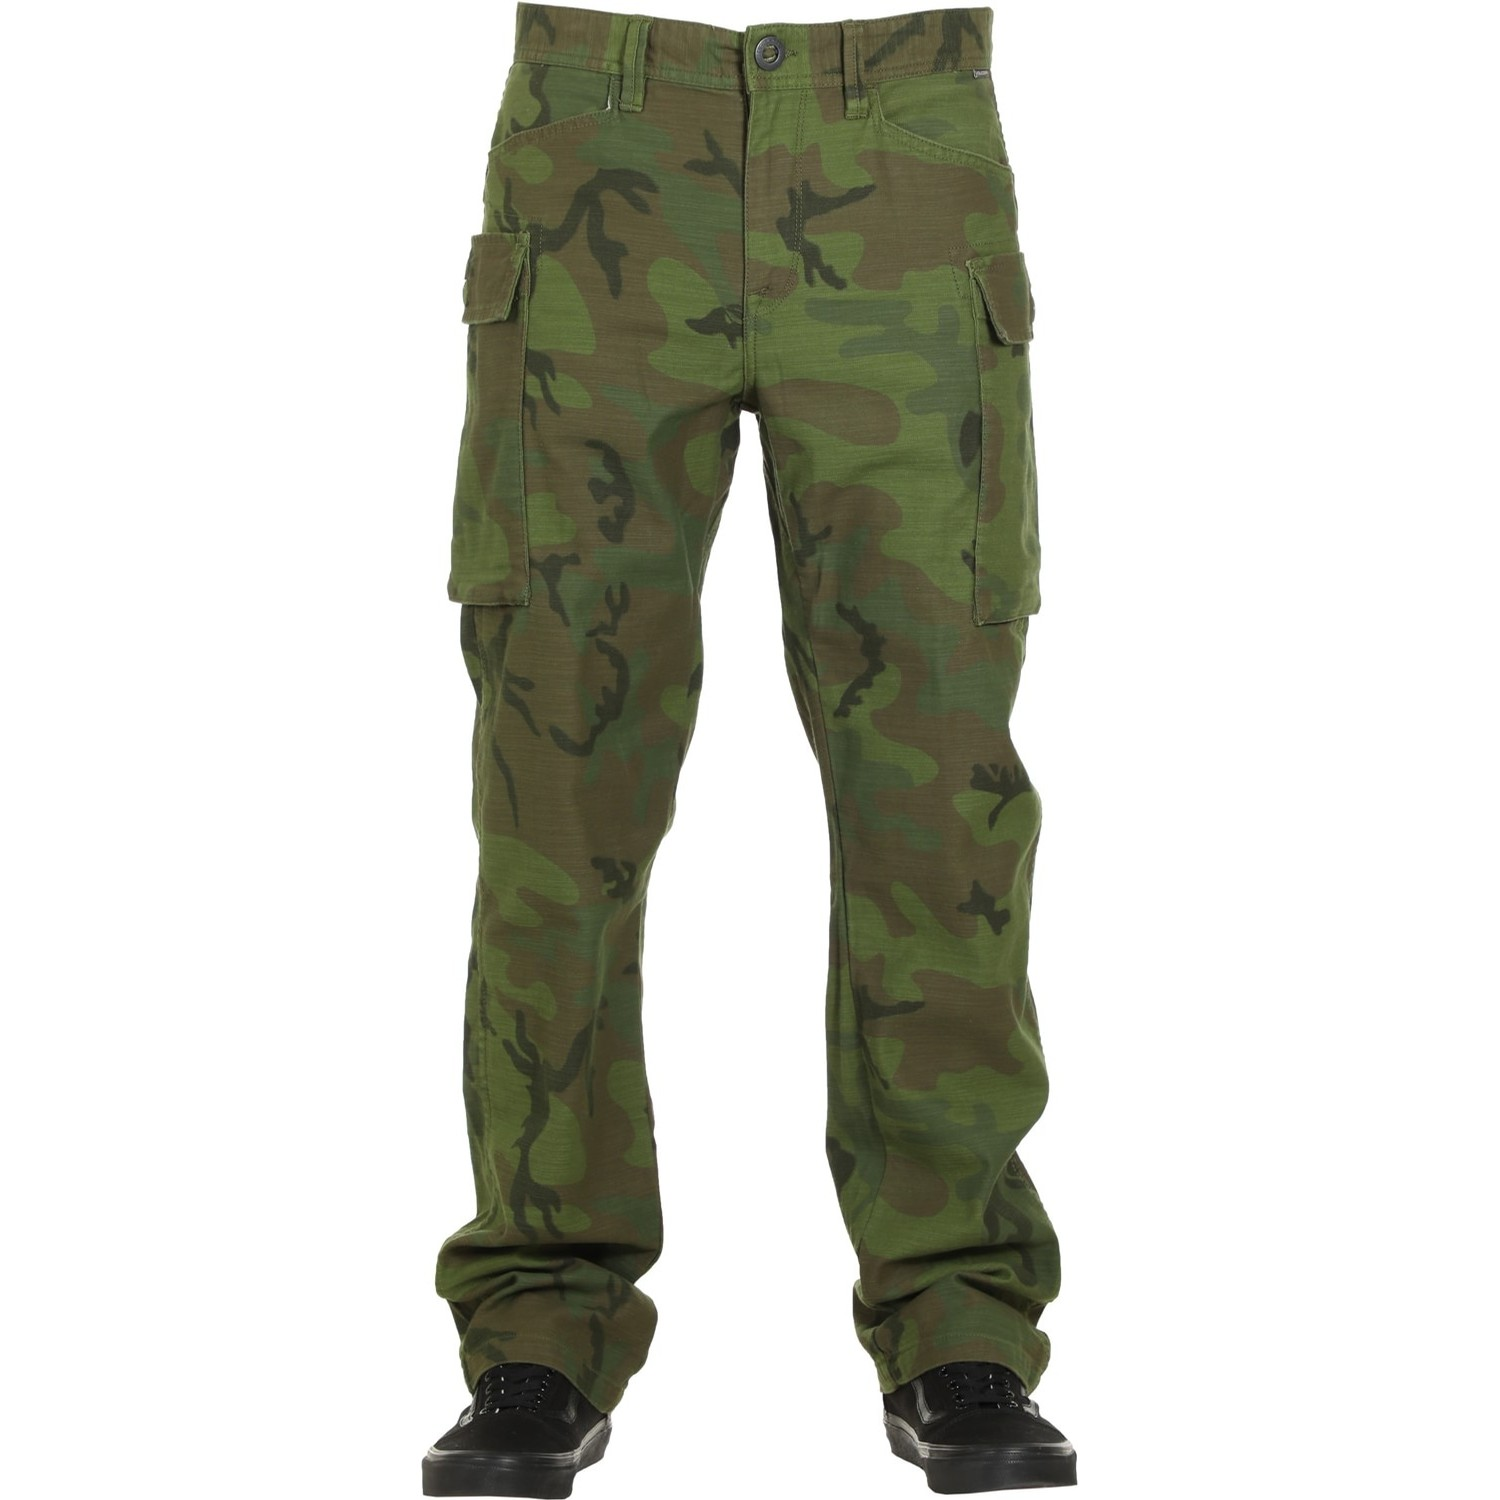 Gritter Cargo Pant (Camouflage)